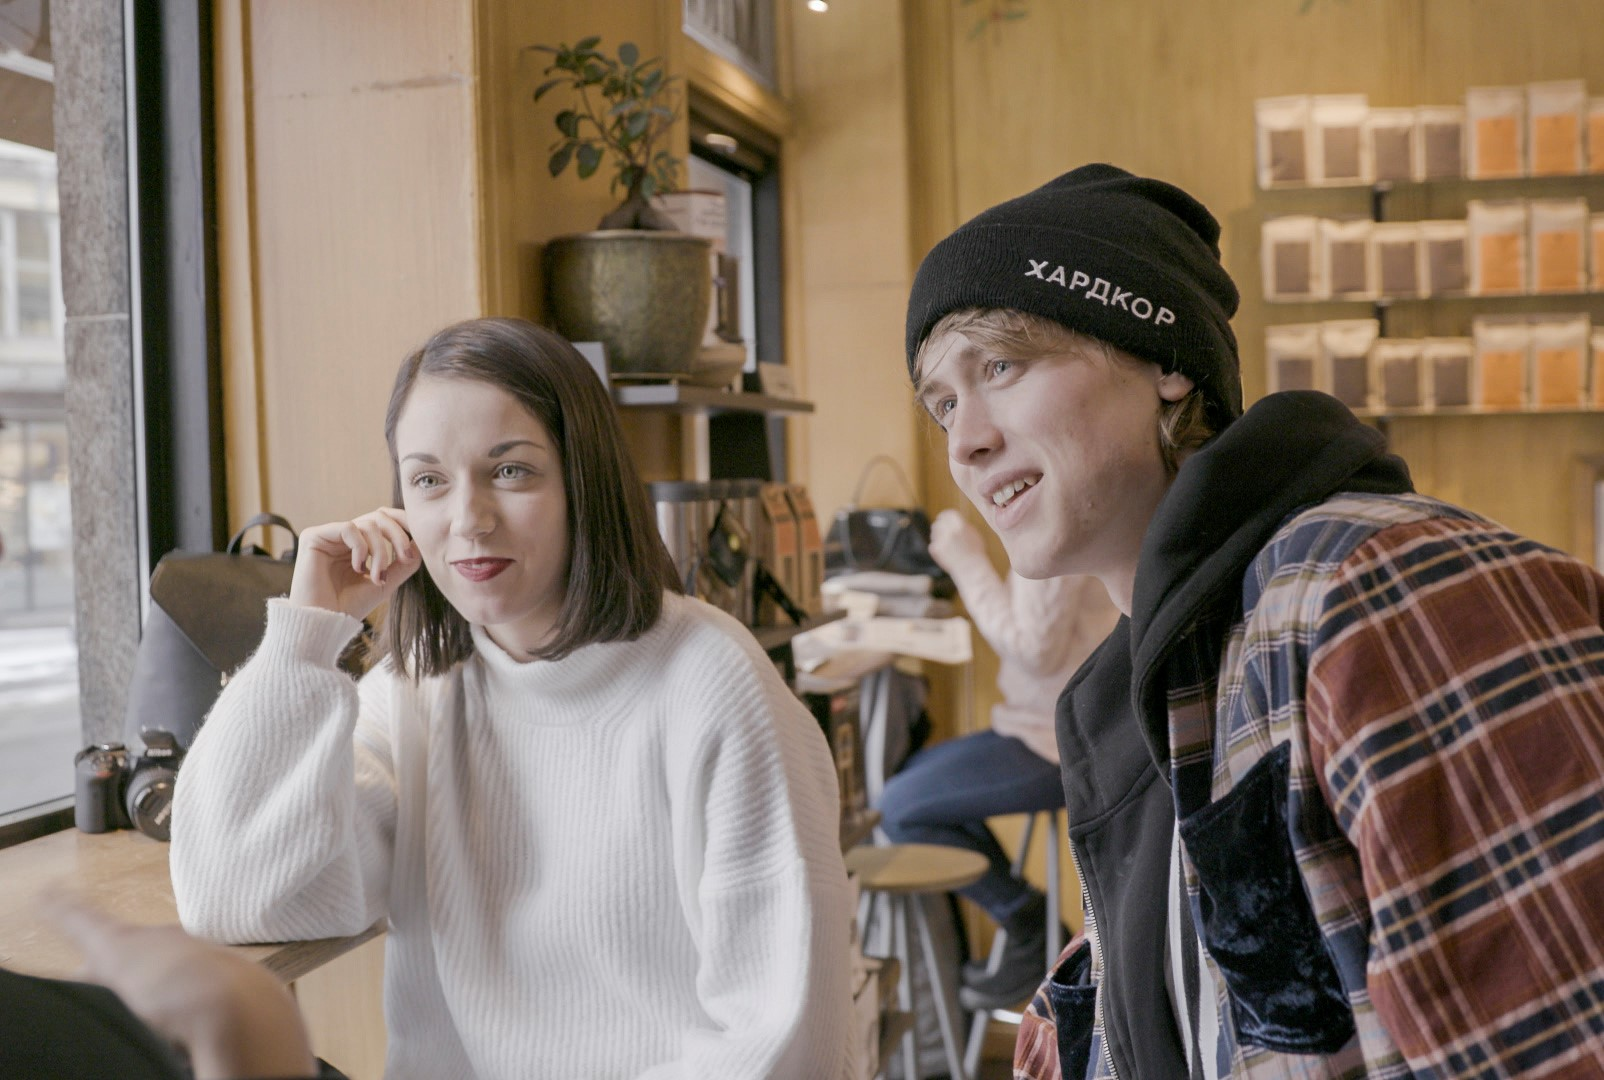 Henrik Holm and Zélia at Kaffebrenneriet